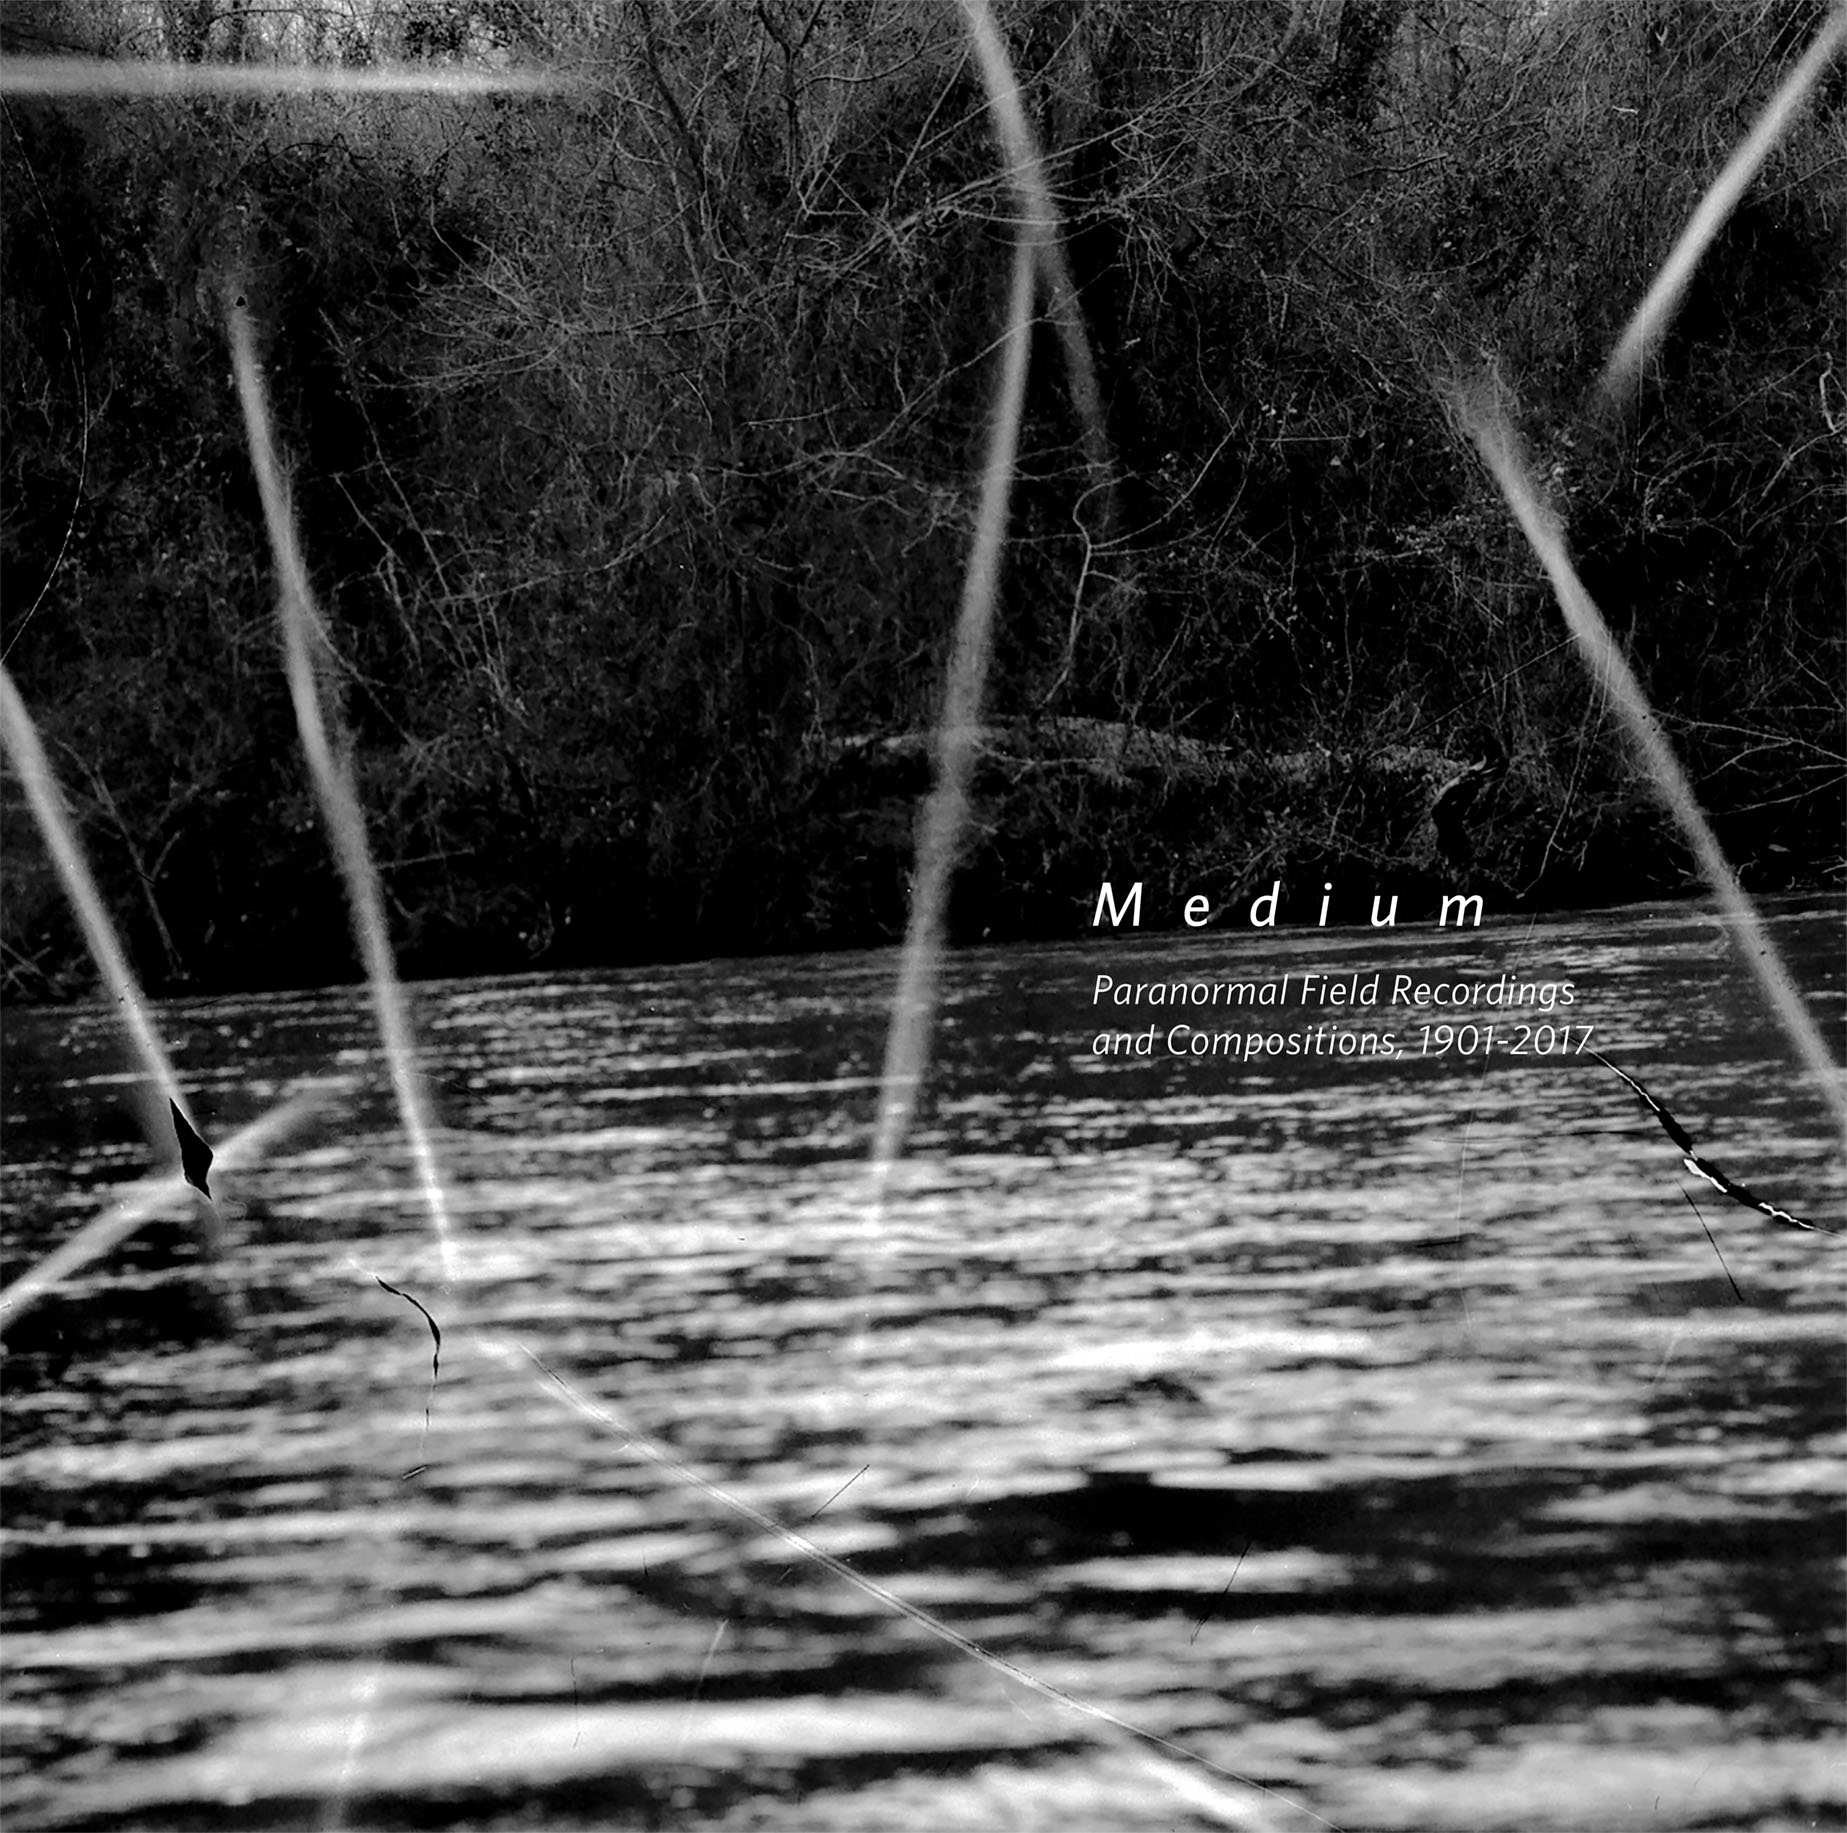 Medium: Paranormal Field Recordings and Compositions, 1901-2017  Release Date: September 29, 2017 For: Zuckerman Museum of Art,Kennesaw State University. Medium Special Exhibit:August 29 - December 3, 2017  SERVICE: Restoration, Mastering NUMBER OF DISCS: 1 GENRE: Paranormal FORMAT: LP